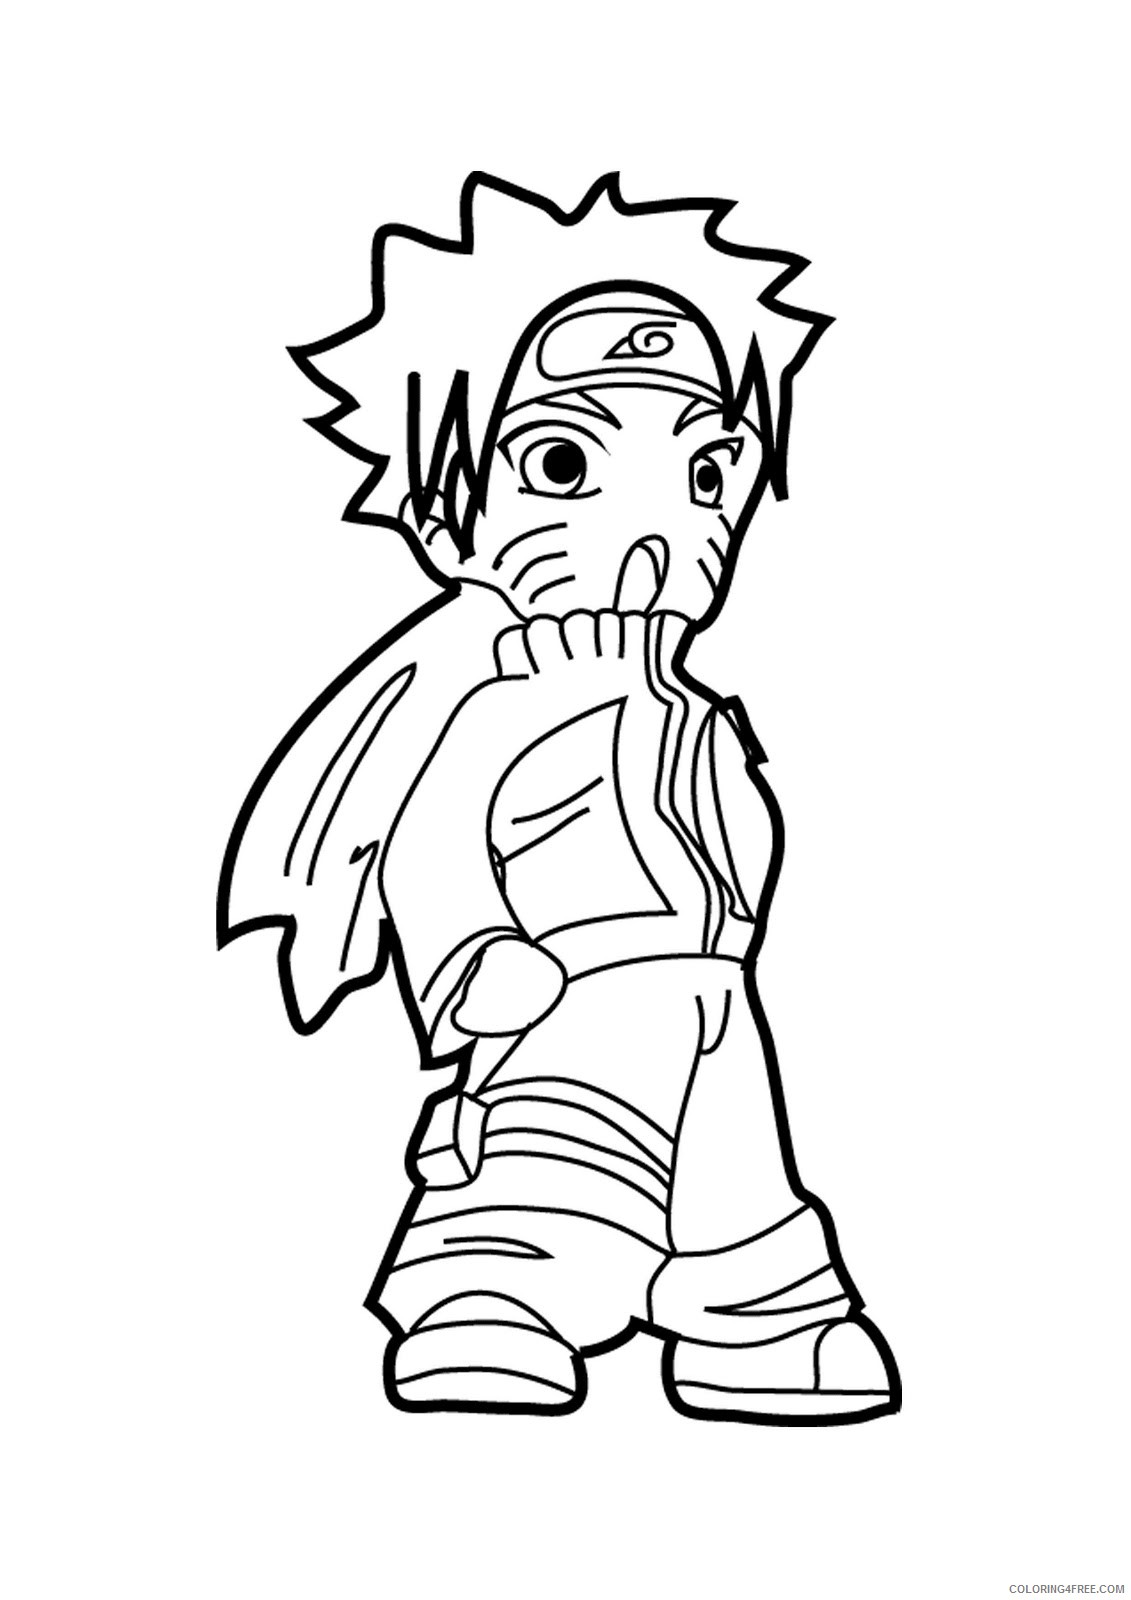 naruto colouring pages printable naruto coloring pages to get your kids occupied pages colouring naruto 1 1